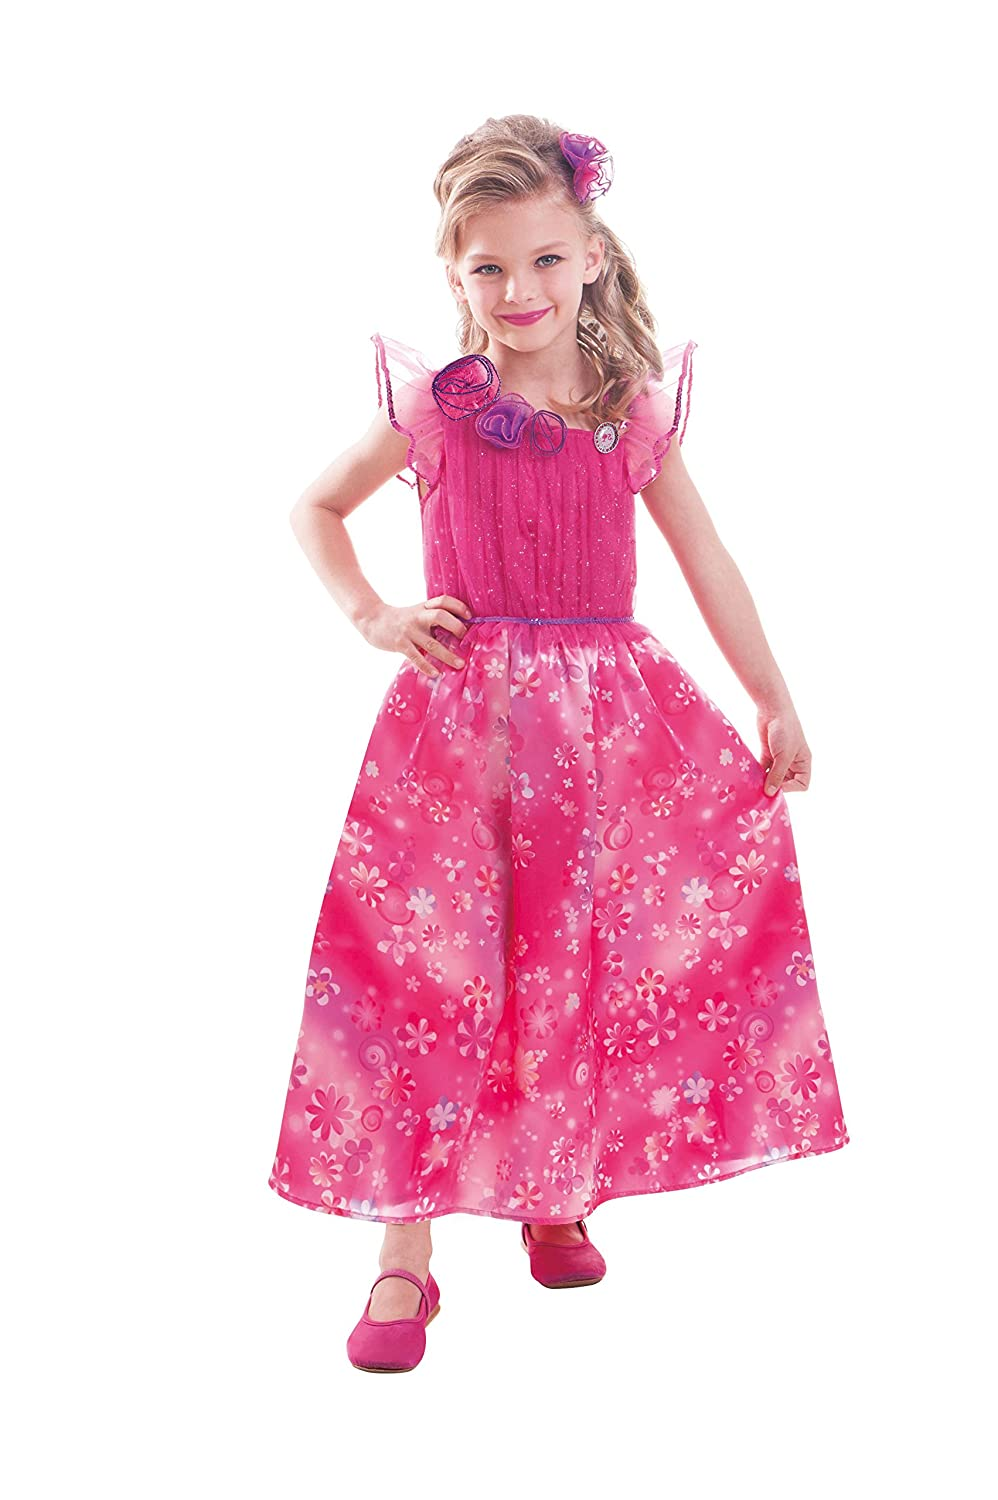 Christys 997549 - Kids Fancy Dress Costume Child - Barbie and the ...